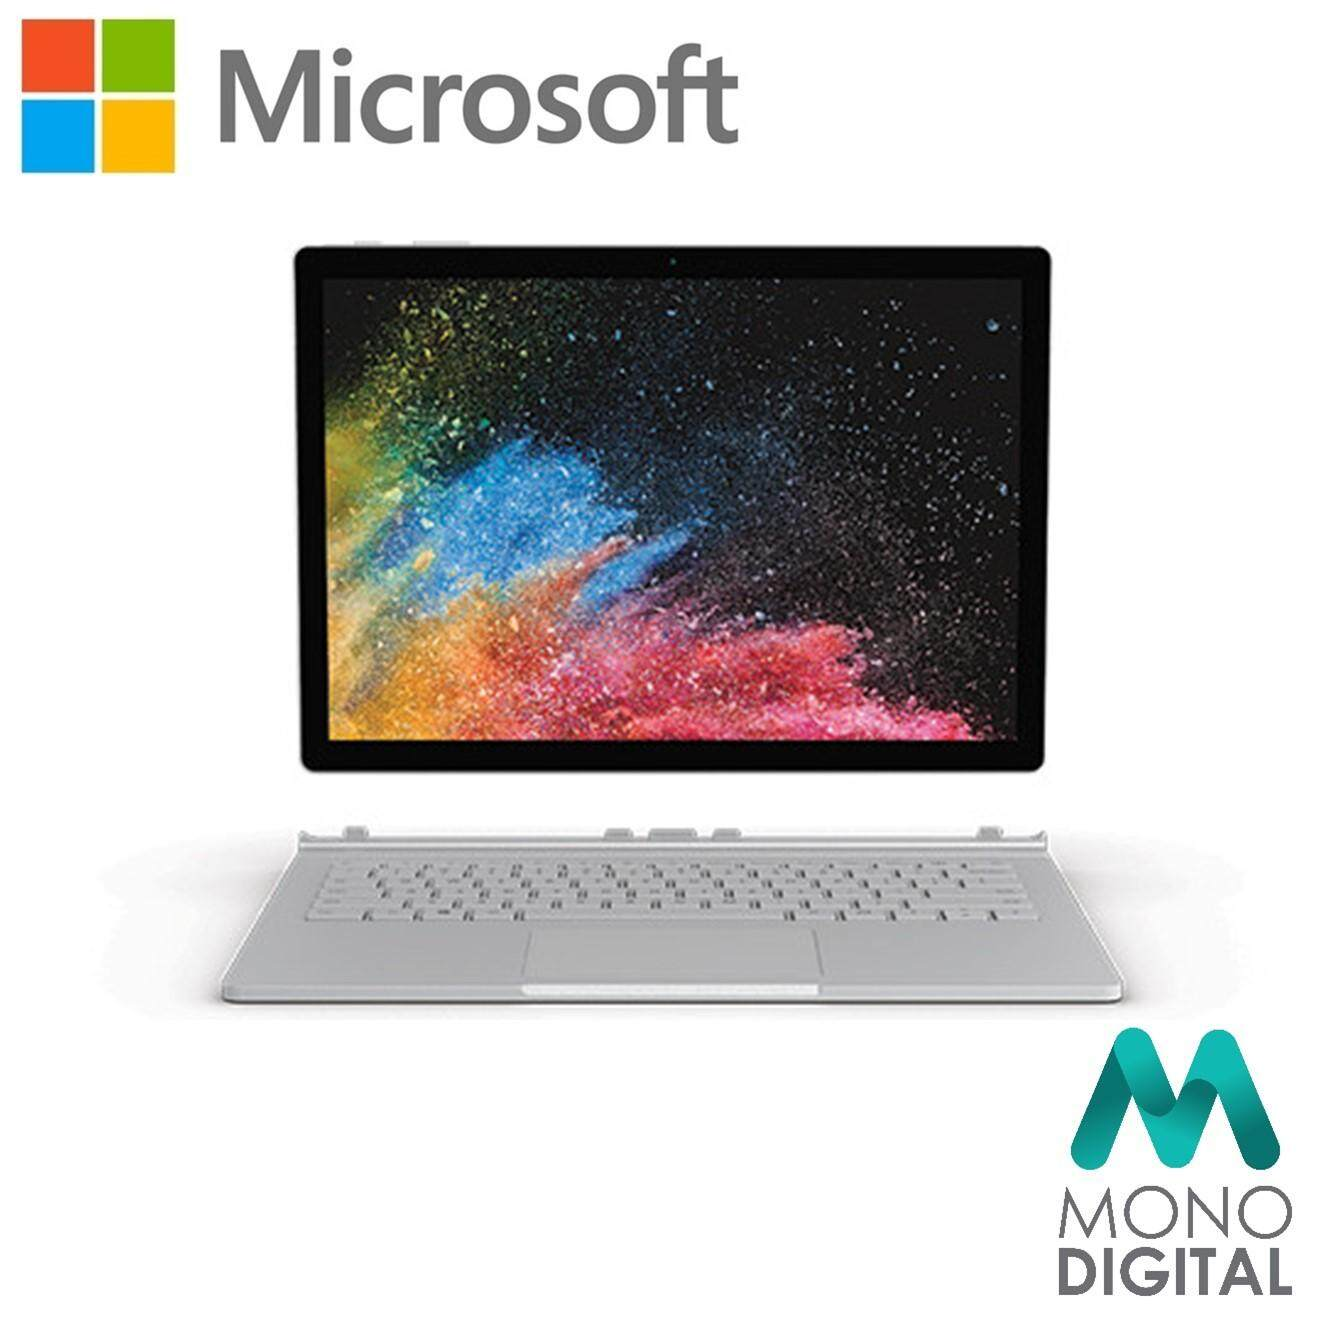 Microsoft Surface Book 2 13 Core i7 / 512GB GTX1050 2GD5 / 16GB RAM Window 10 Pro Malaysia